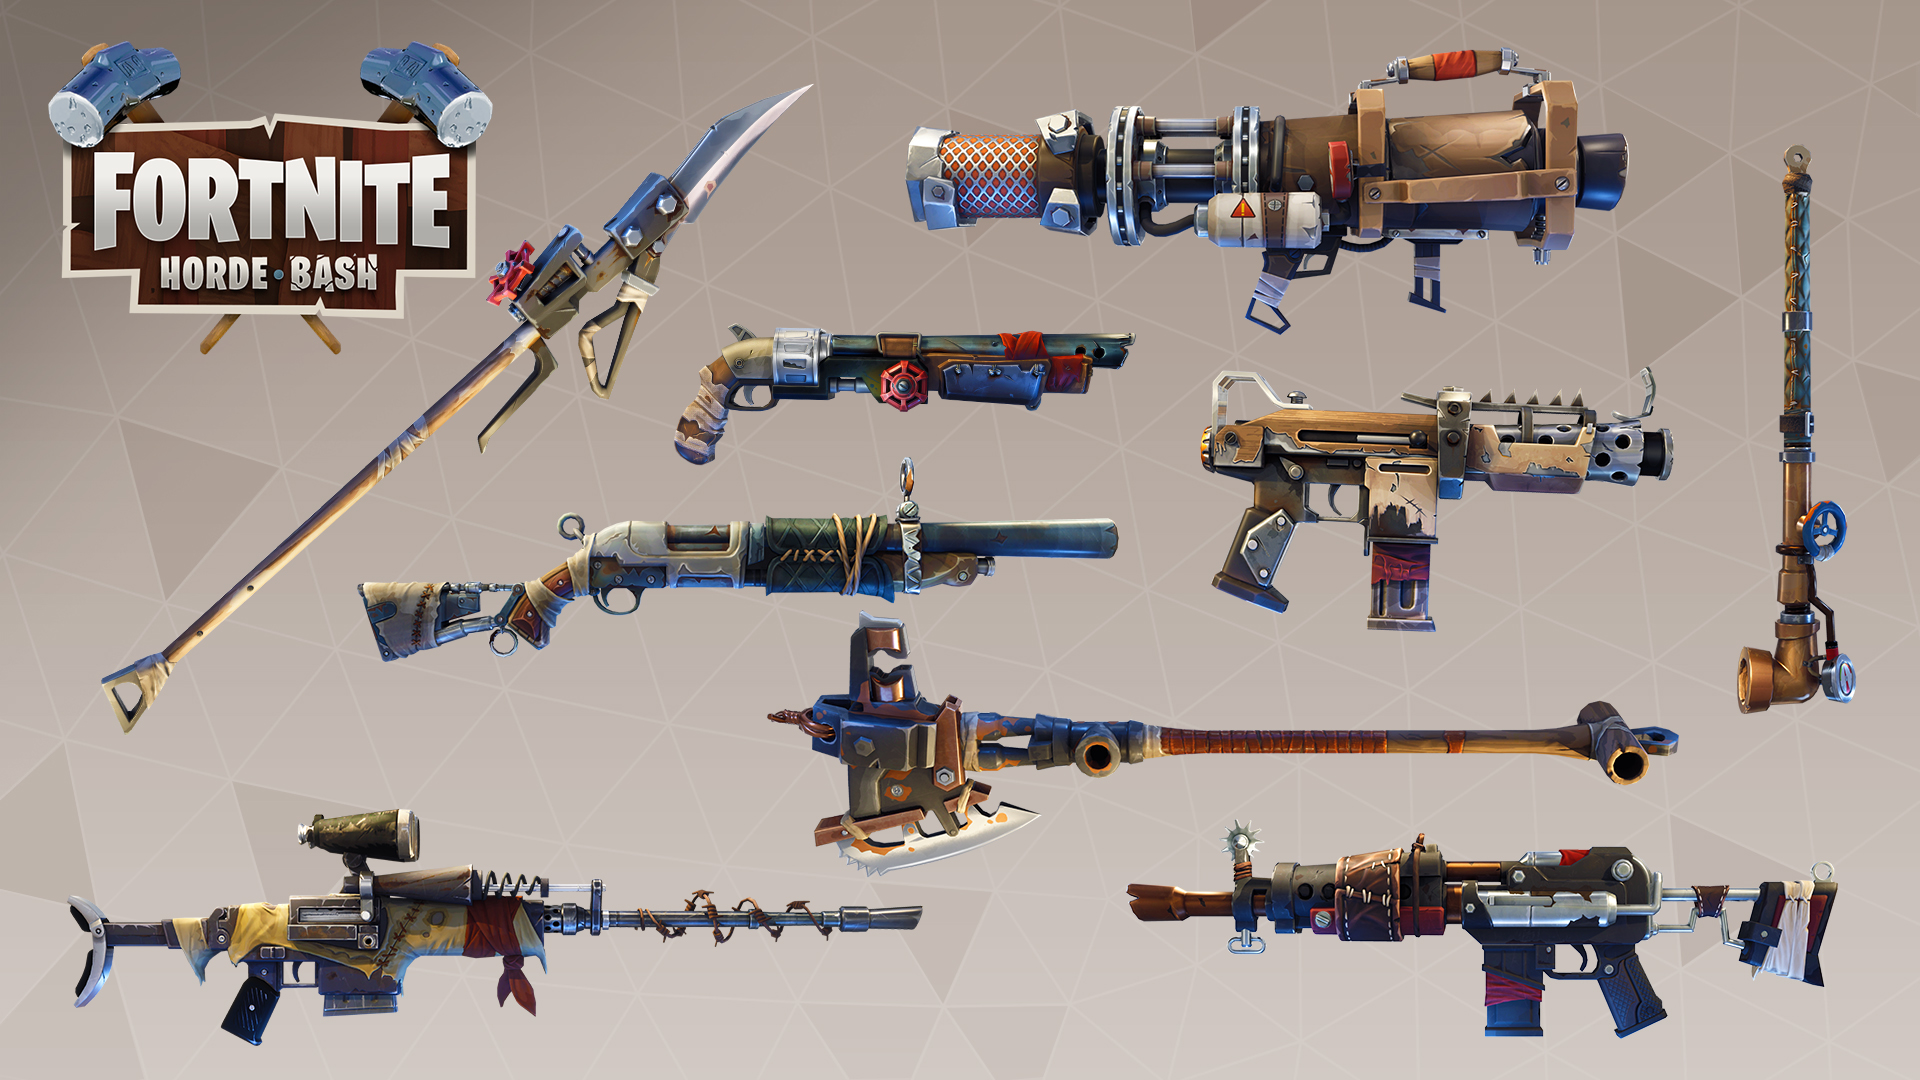 Fortnite%2Fblog%2Fea-1-7-patch-notes%2FENG-HB-Weapons-1920x1080-4322573a6cdd92c7d6599281201a2bcb4aab5379